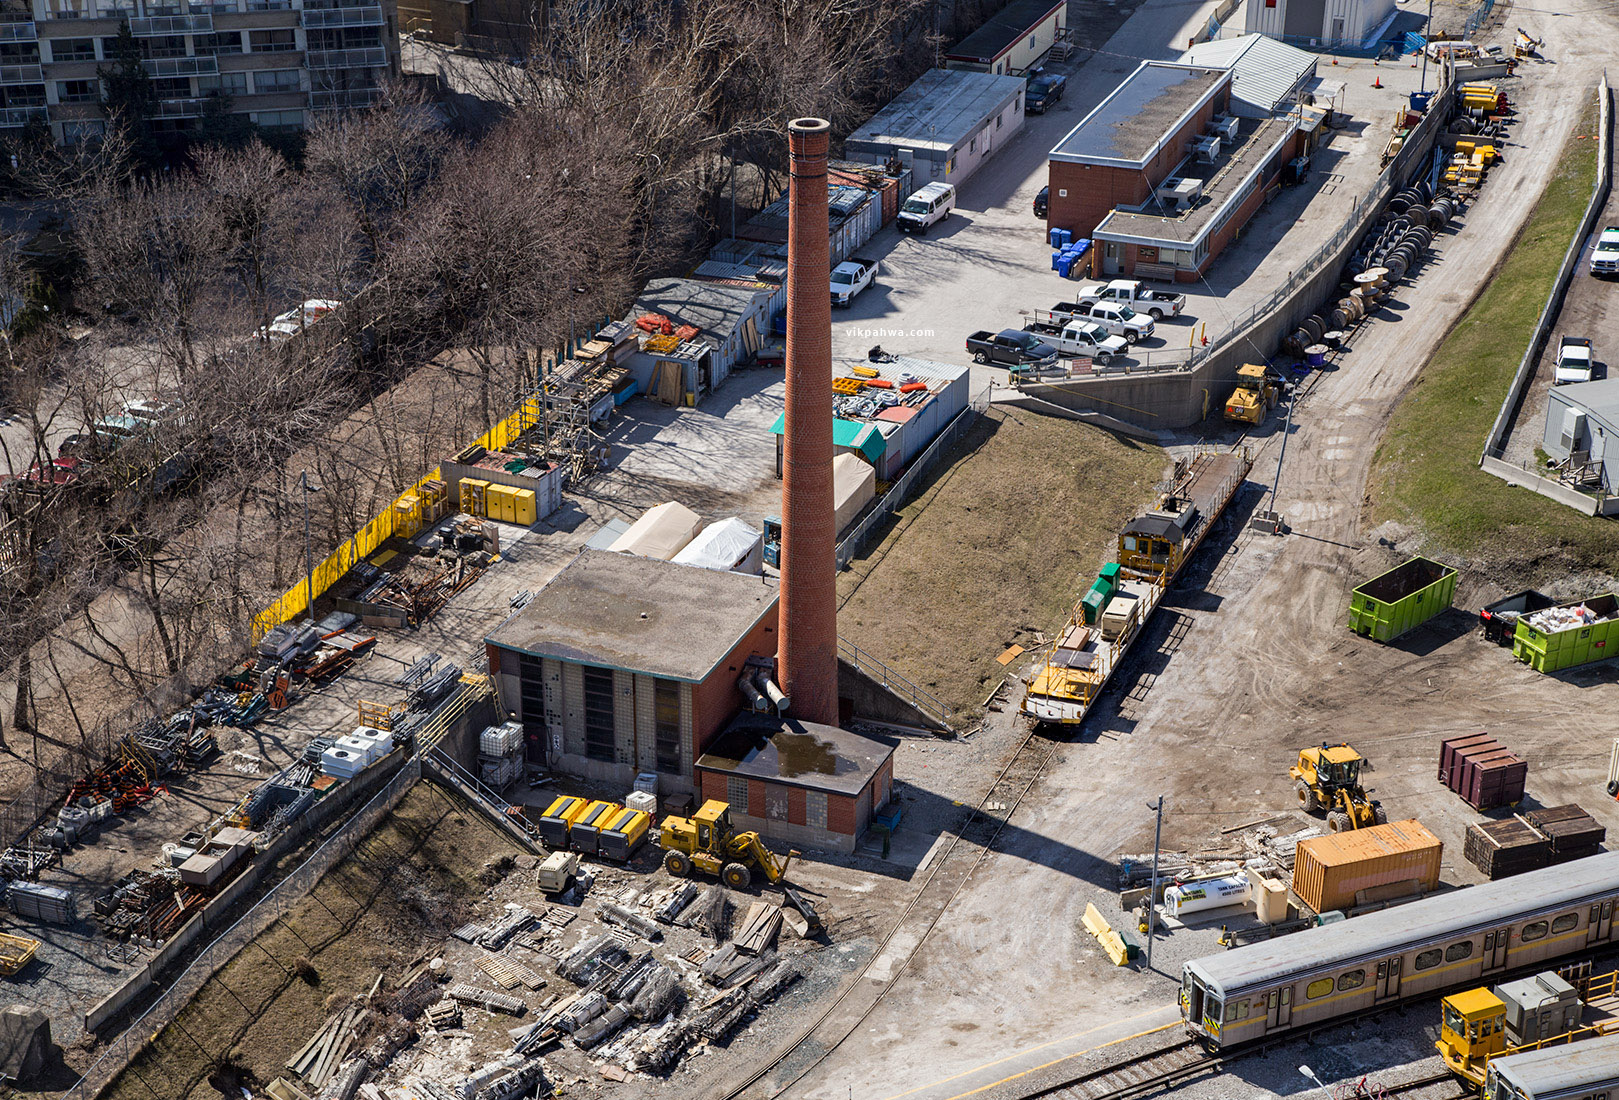 20160413. A bird's eye view of a smokestack perch at TTC's Davis